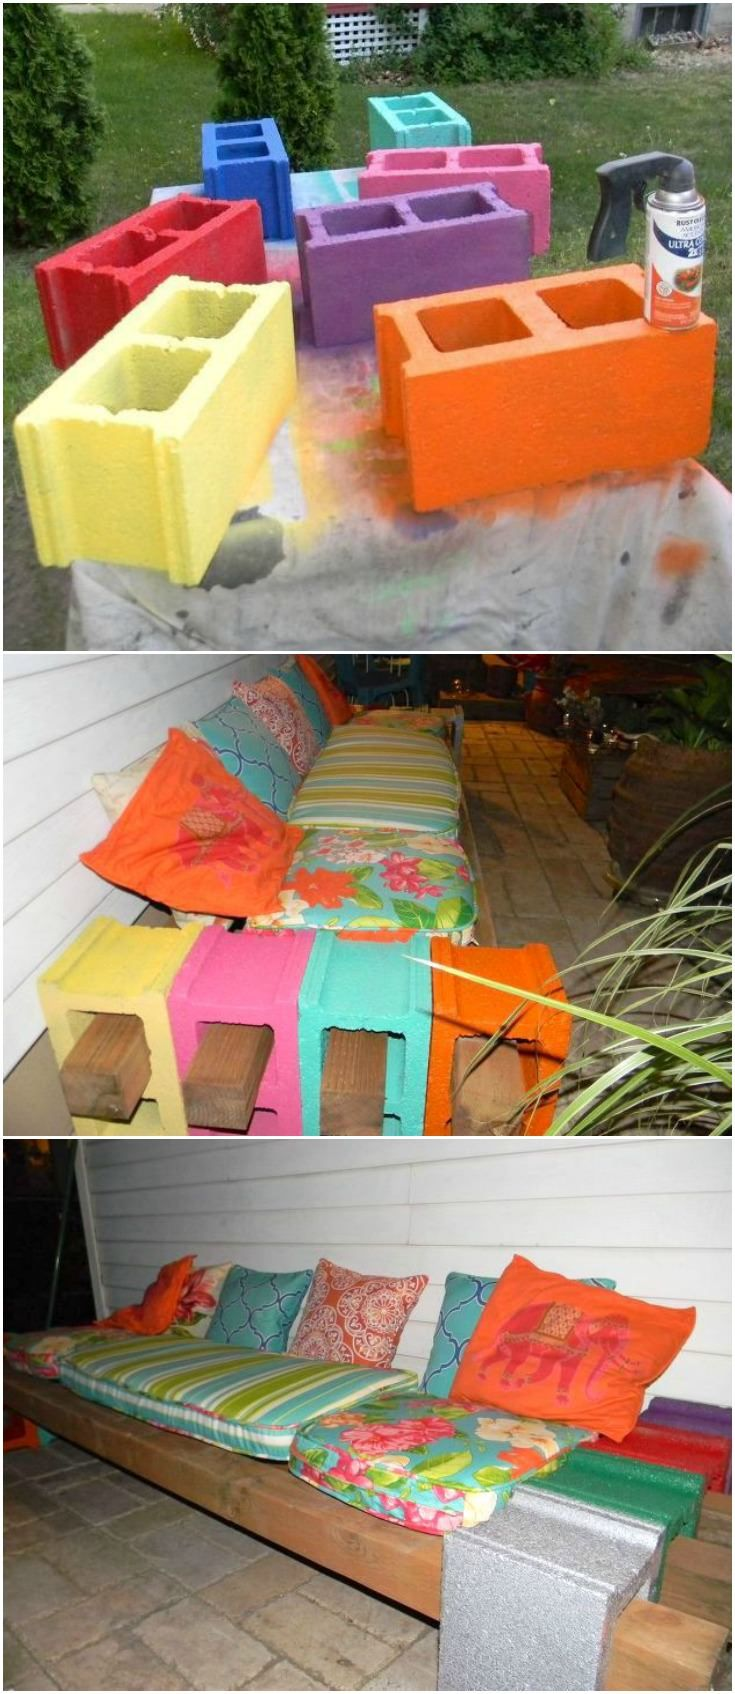 Learn how to make a cinder block bench with beams - Invite your friends over, you've got plenty of room for them to sit and enjoy your new outdoor space full of color & light!